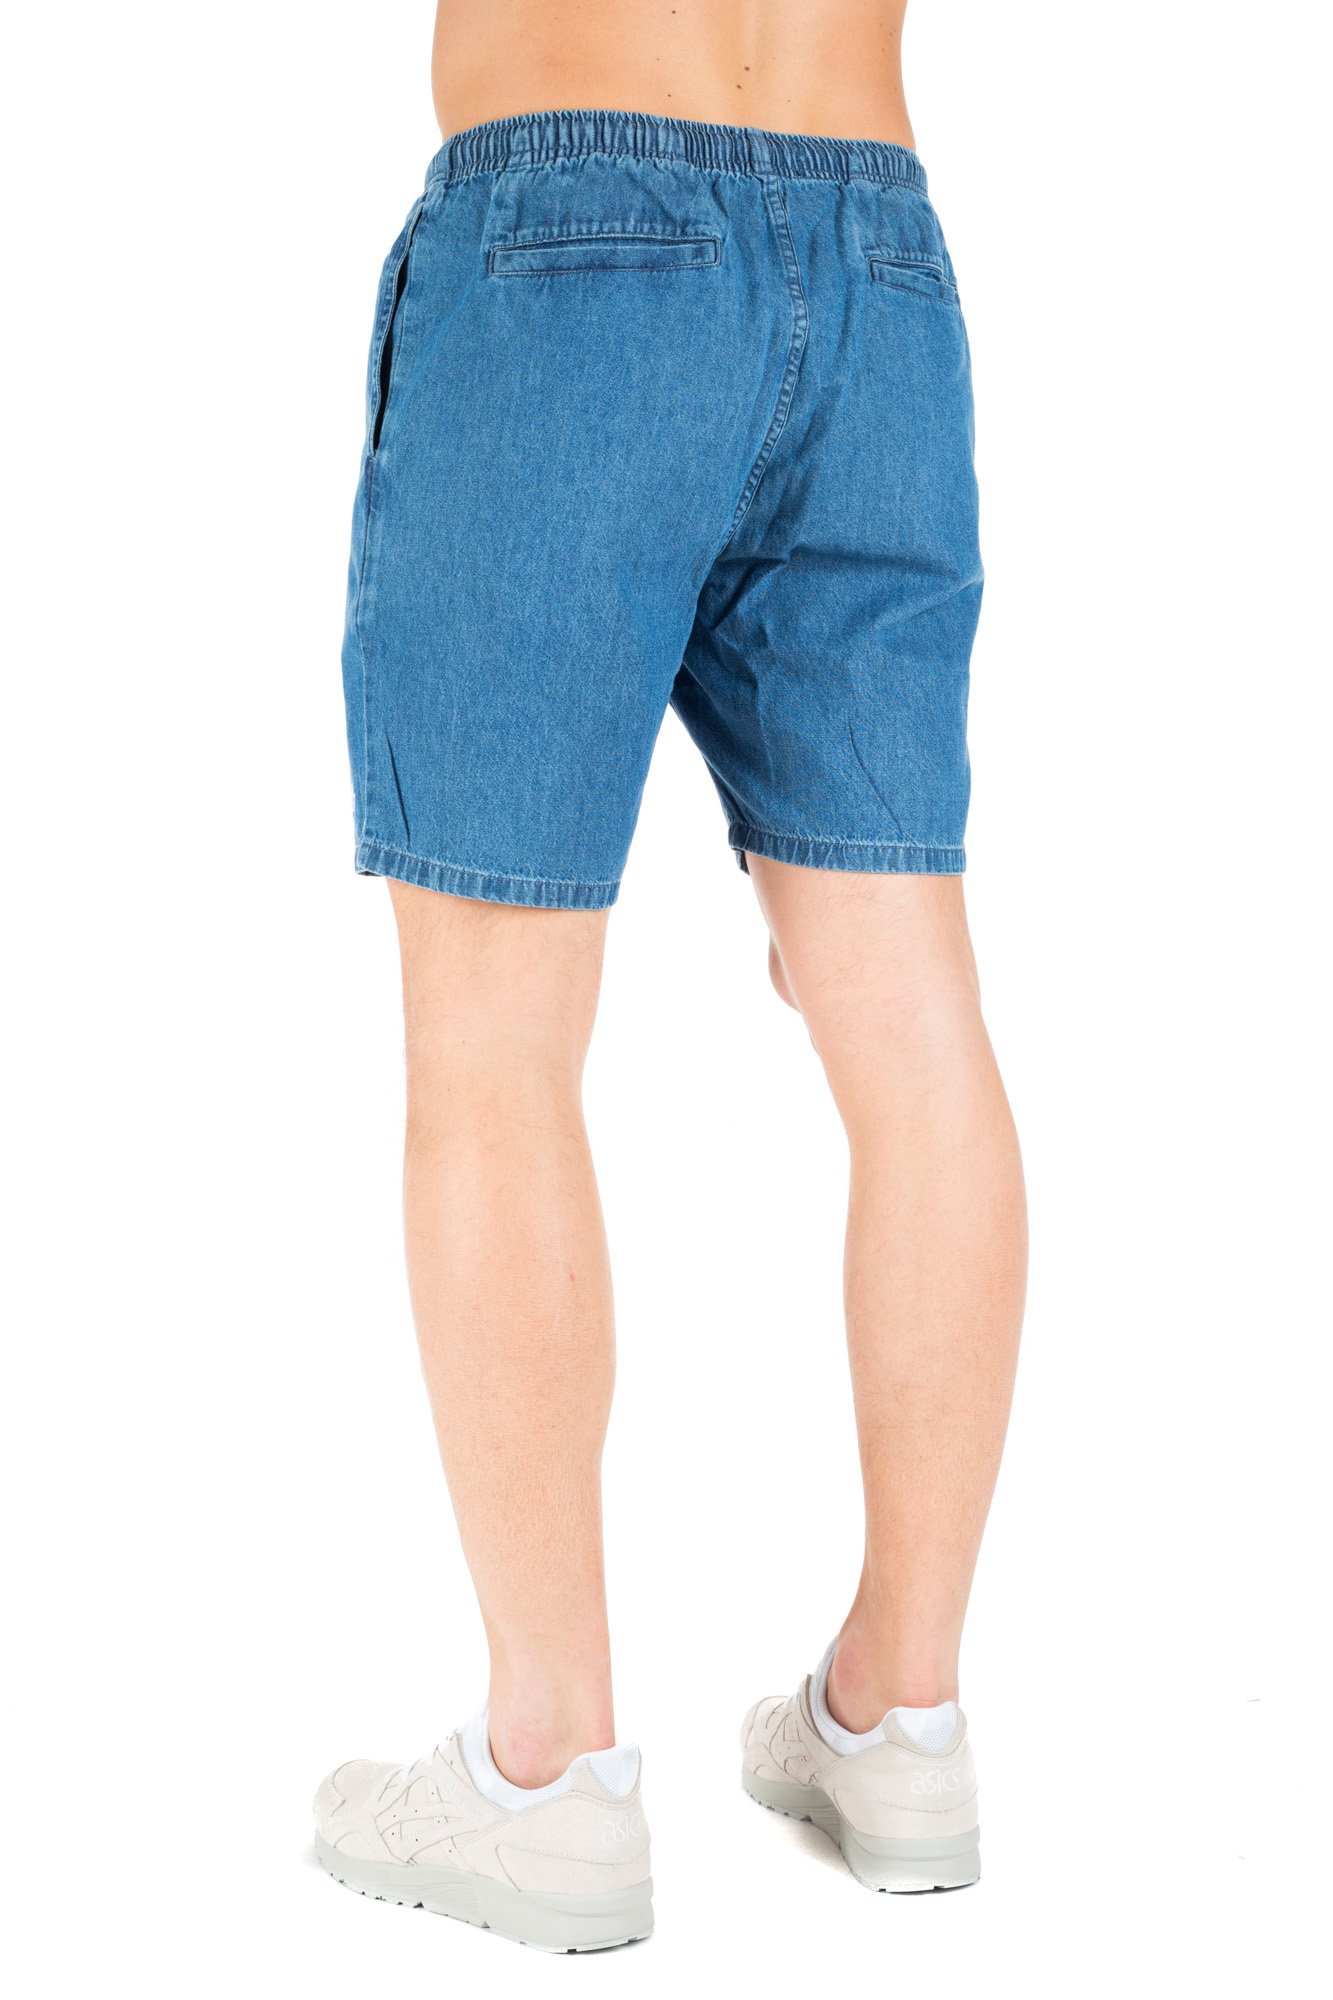 Obey - Elasticated waistband shorts